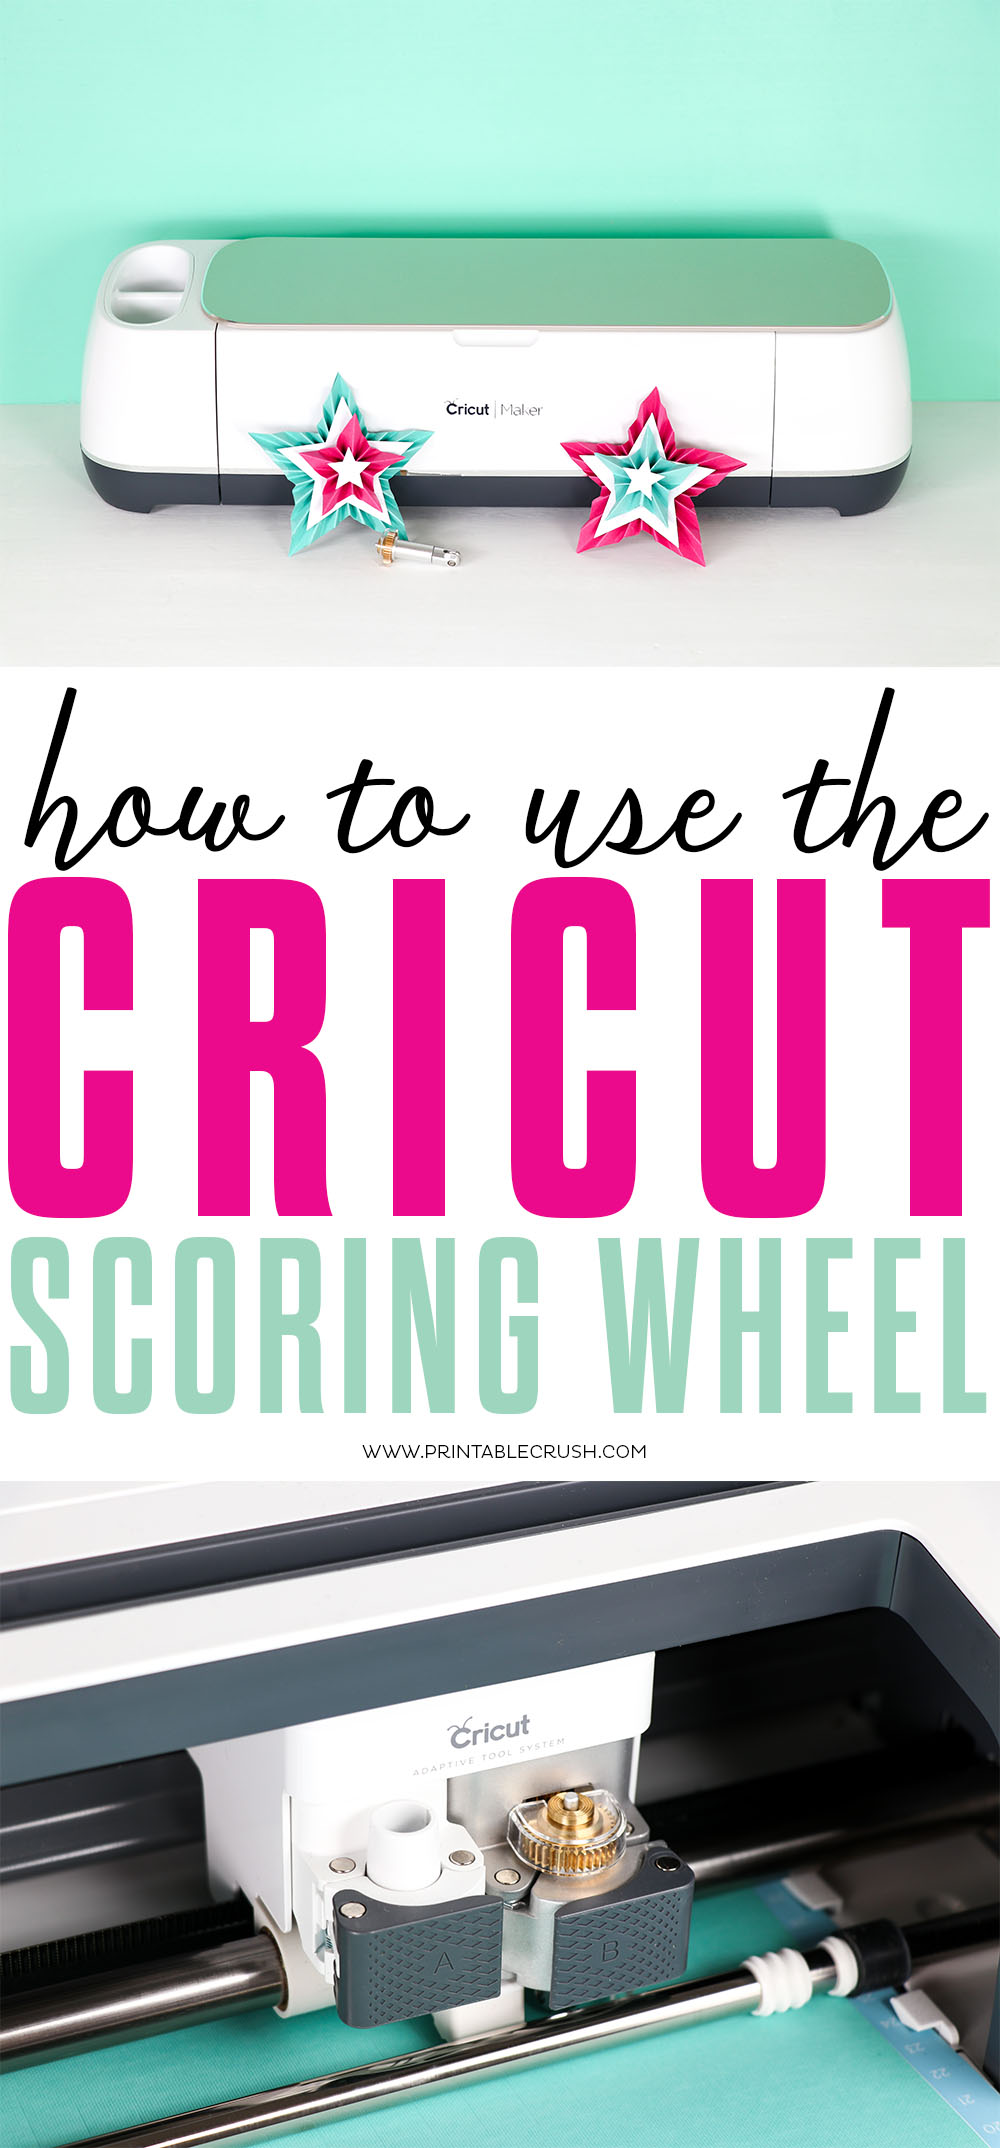 Learn how to use the Cricut Scoring Wheel on the Cricut Maker! Probably the easiest Cricut tutorial ever! #cricutscoringwheel #cricutmaker #cricutmakertutorial #cricutcraft #papercraft #cricutpapercraft #cricutmade #sayitwithcricut #cricutdesignspace via @printablecrush